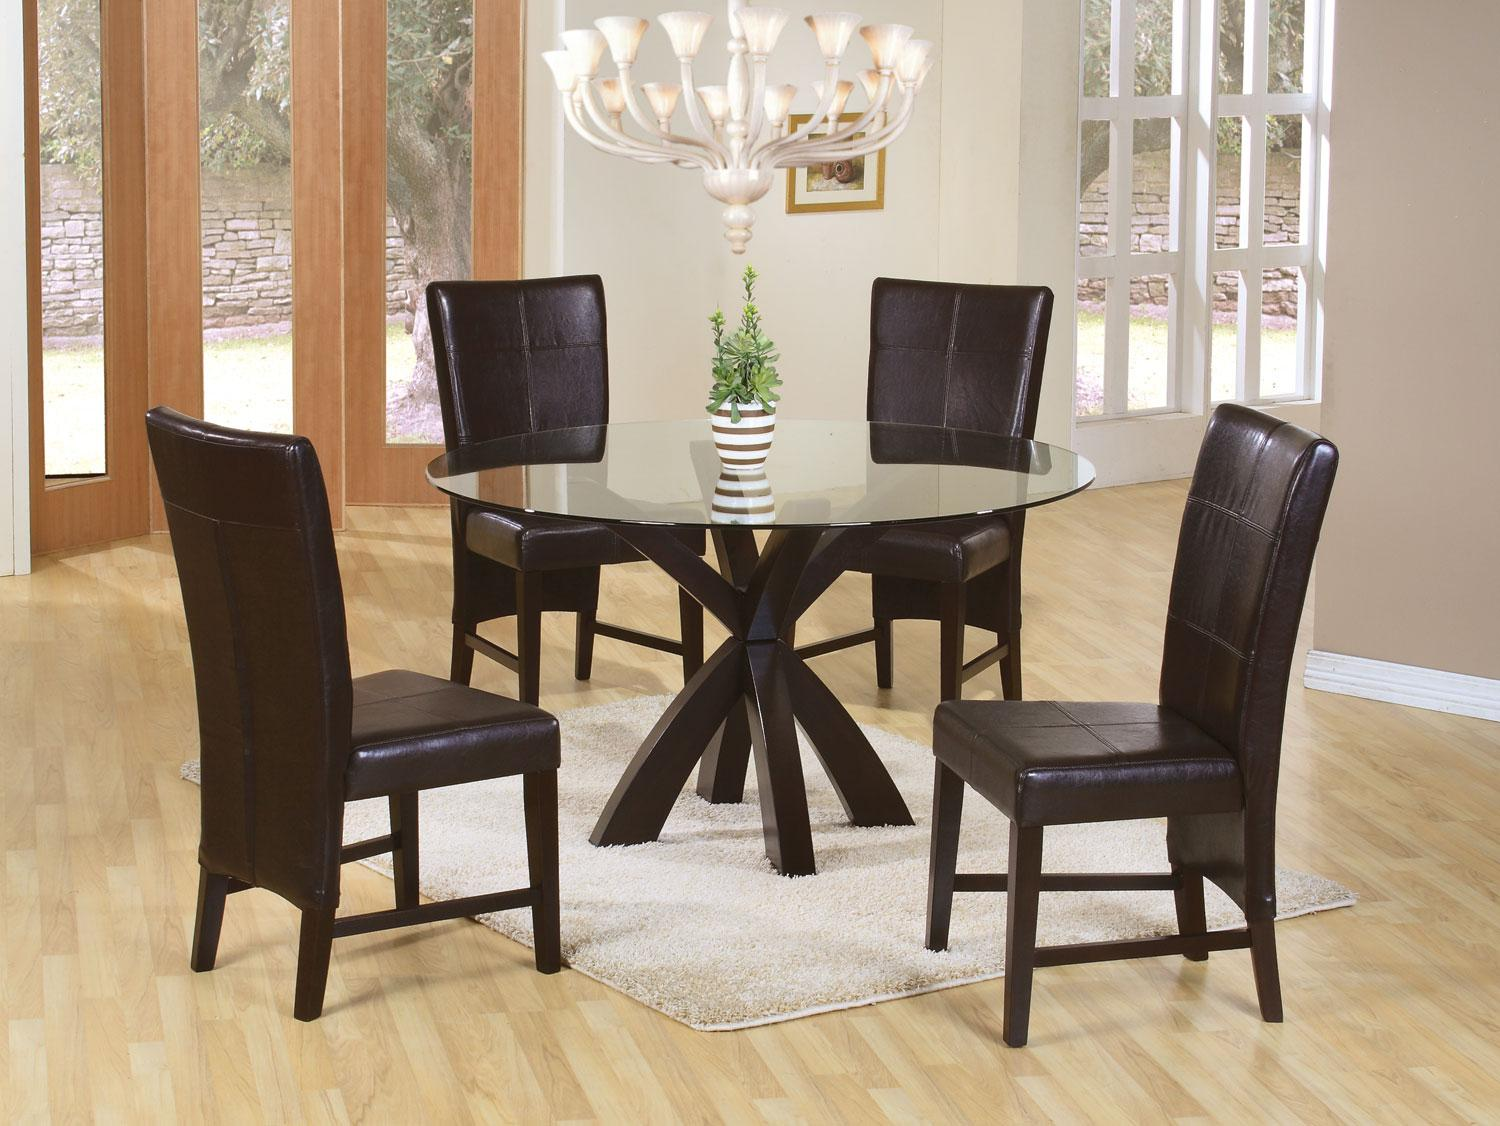 a1bab4cc2a6 5 Pc Chocolate Dining Set with Parson Chairs